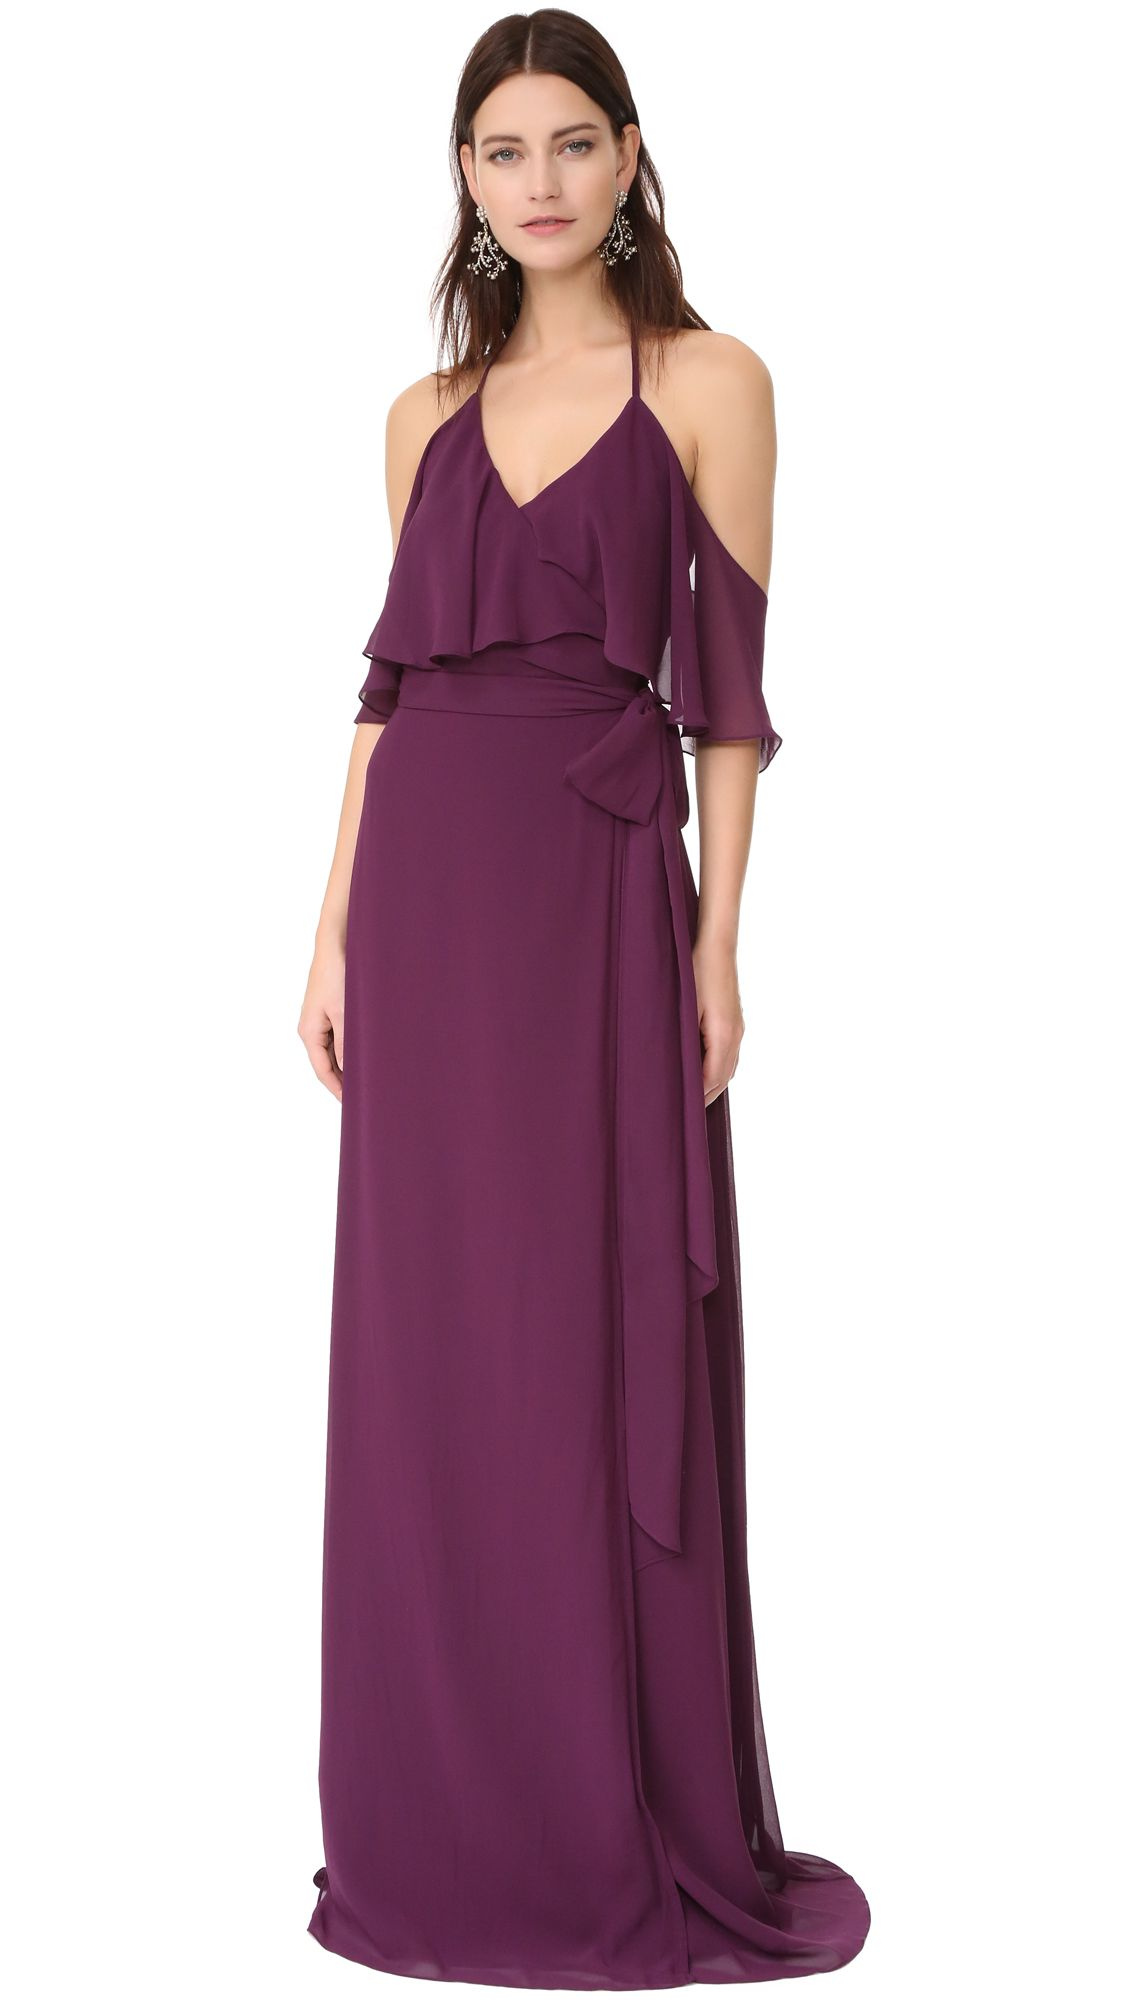 Purple Dresses | Carols formal wear | Pinterest | Dresses, Halter ...